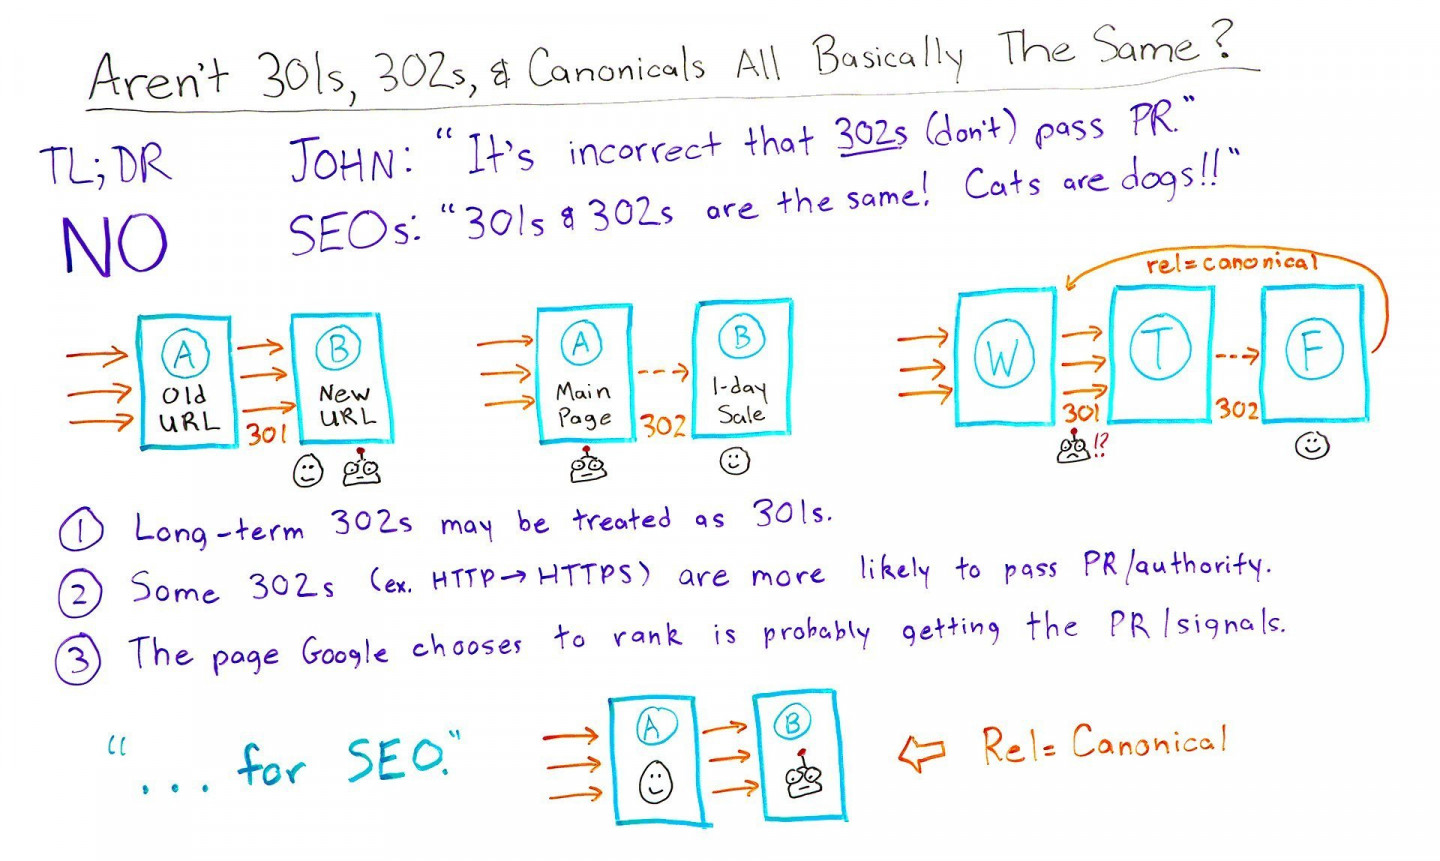 Aren't 301s, 302s, and Canonicals All Basically the Same? - Best of Whiteboard Friday